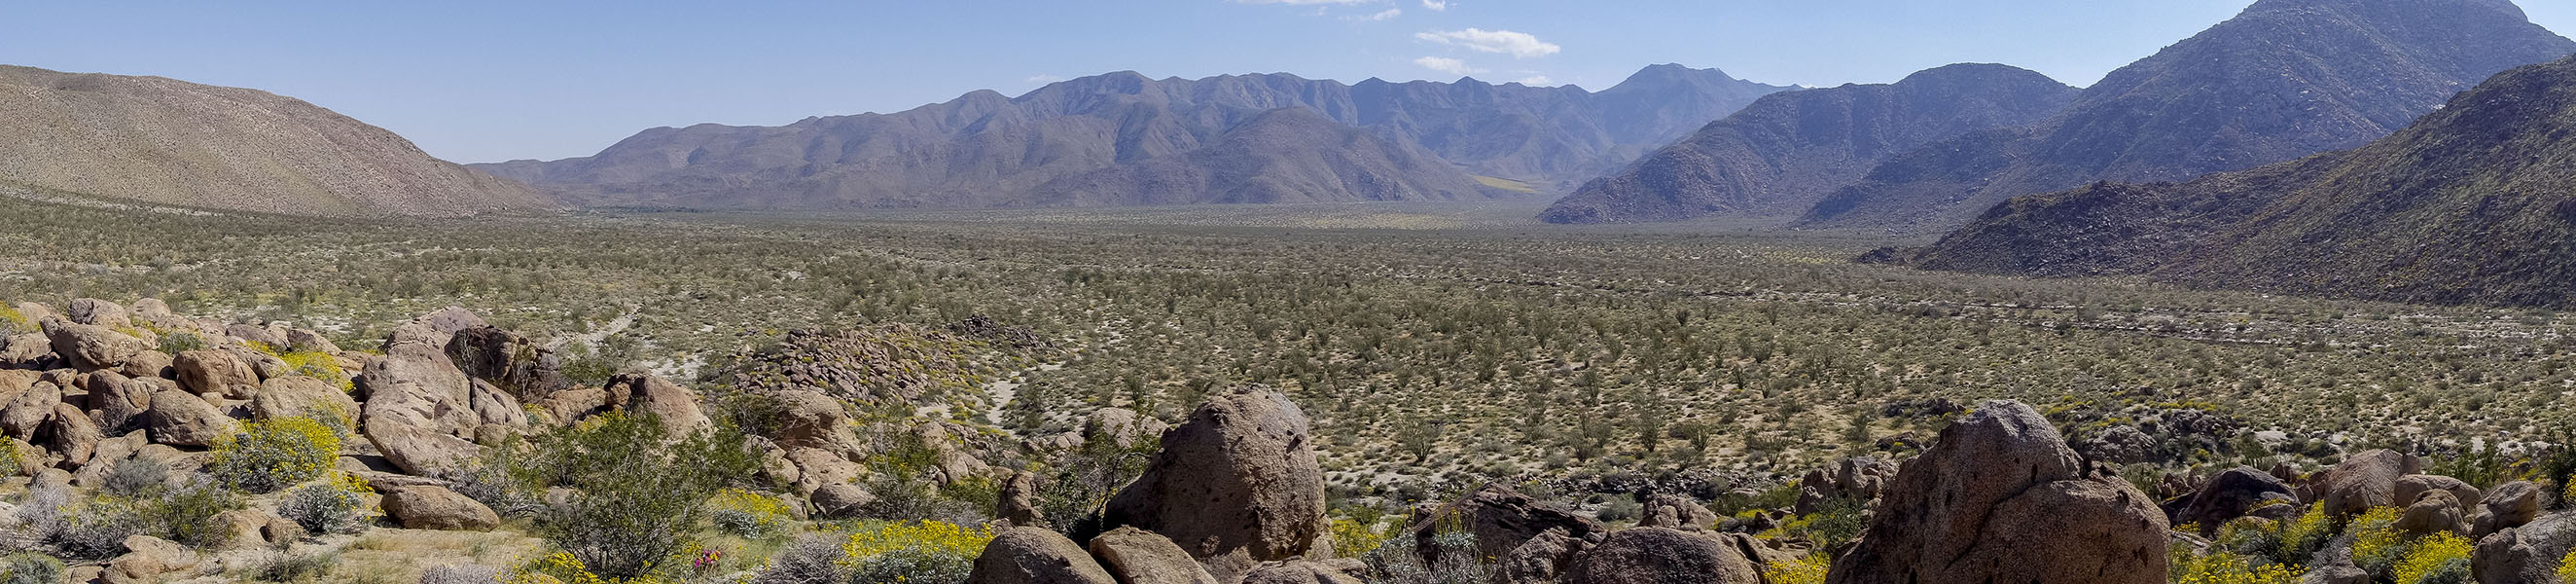 Panorama of Coyote Canyon in Anza-Borrego Desert State Park.